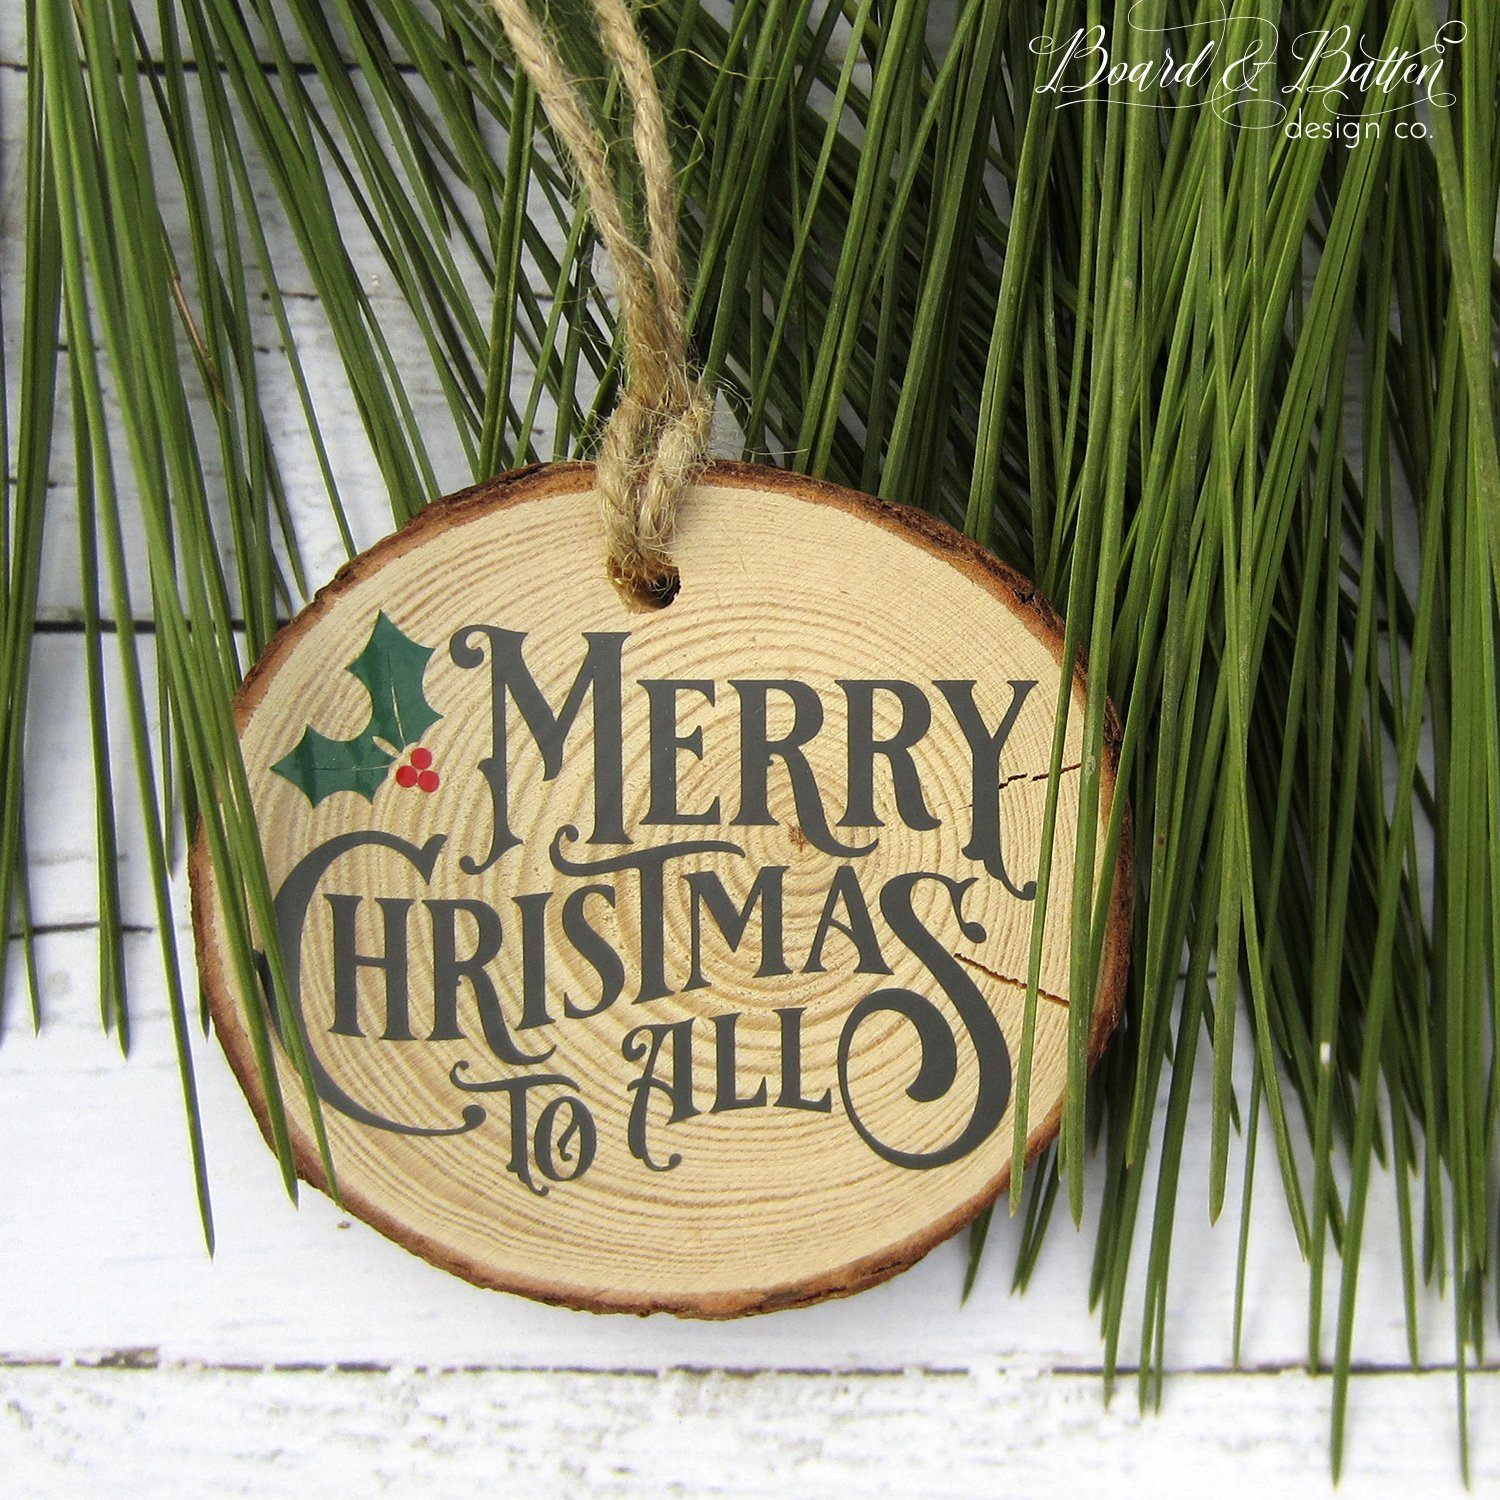 Merry Christmas to All Vintage Christmas SVG File - Commercial Use SVG Files